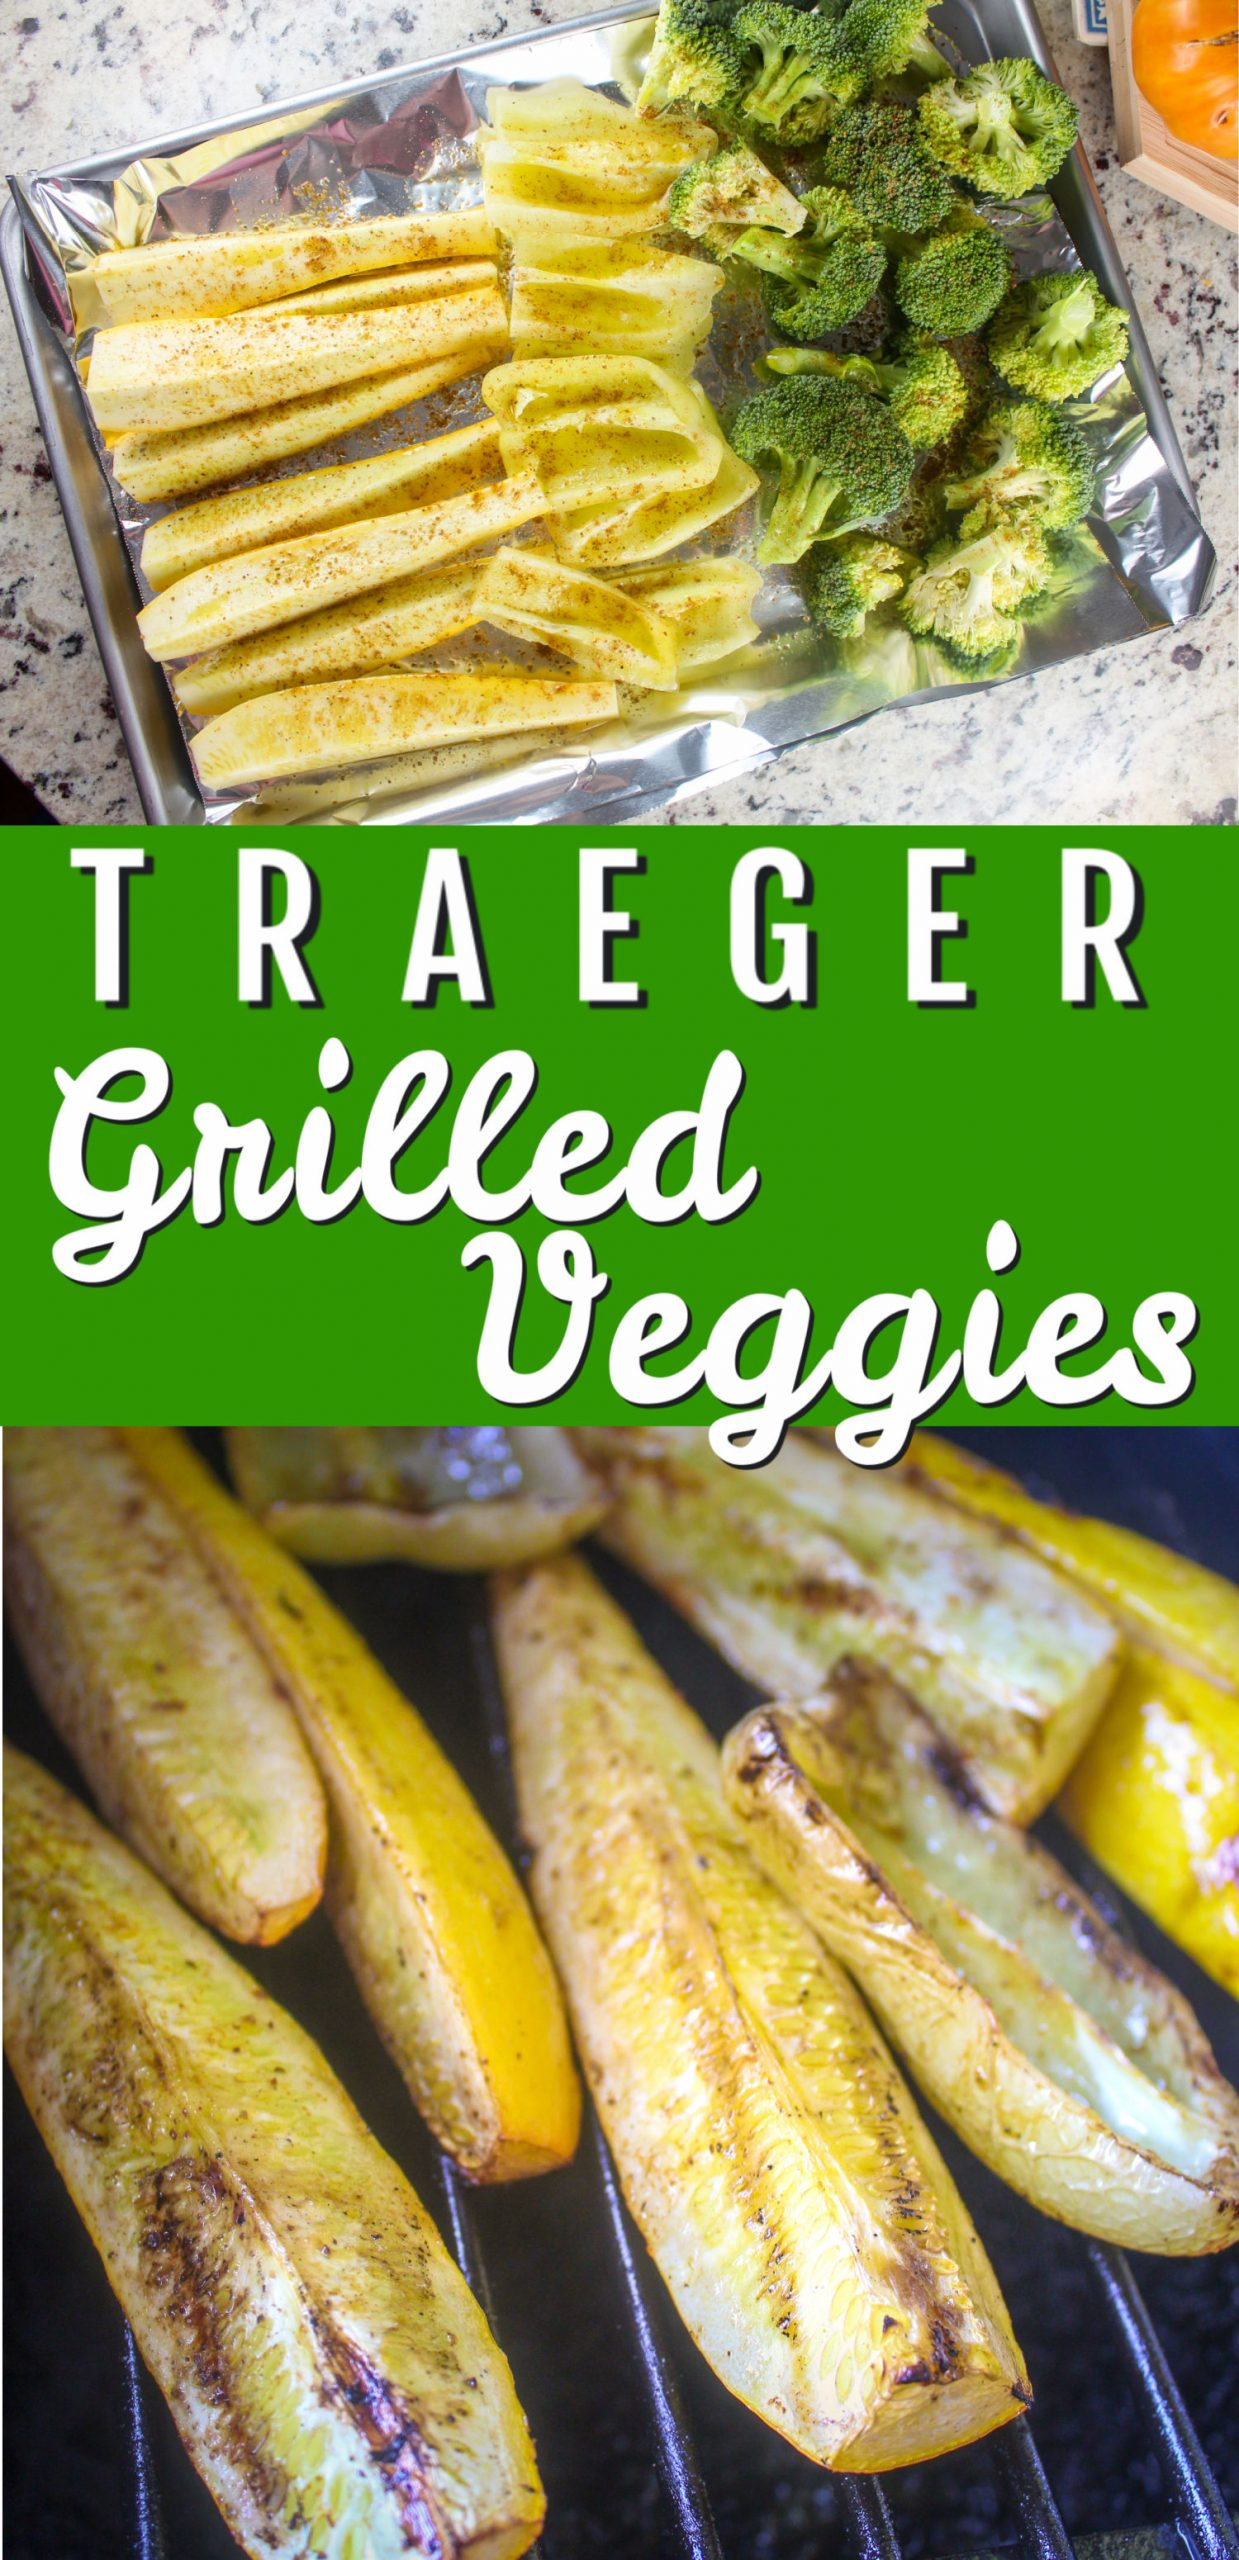 Using the Traeger to grill vegetables is the easiest summertime side you'll find! Set it and forget it - plus the smoky flavor from the Traeger pellets is delicious!  via @foodhussy